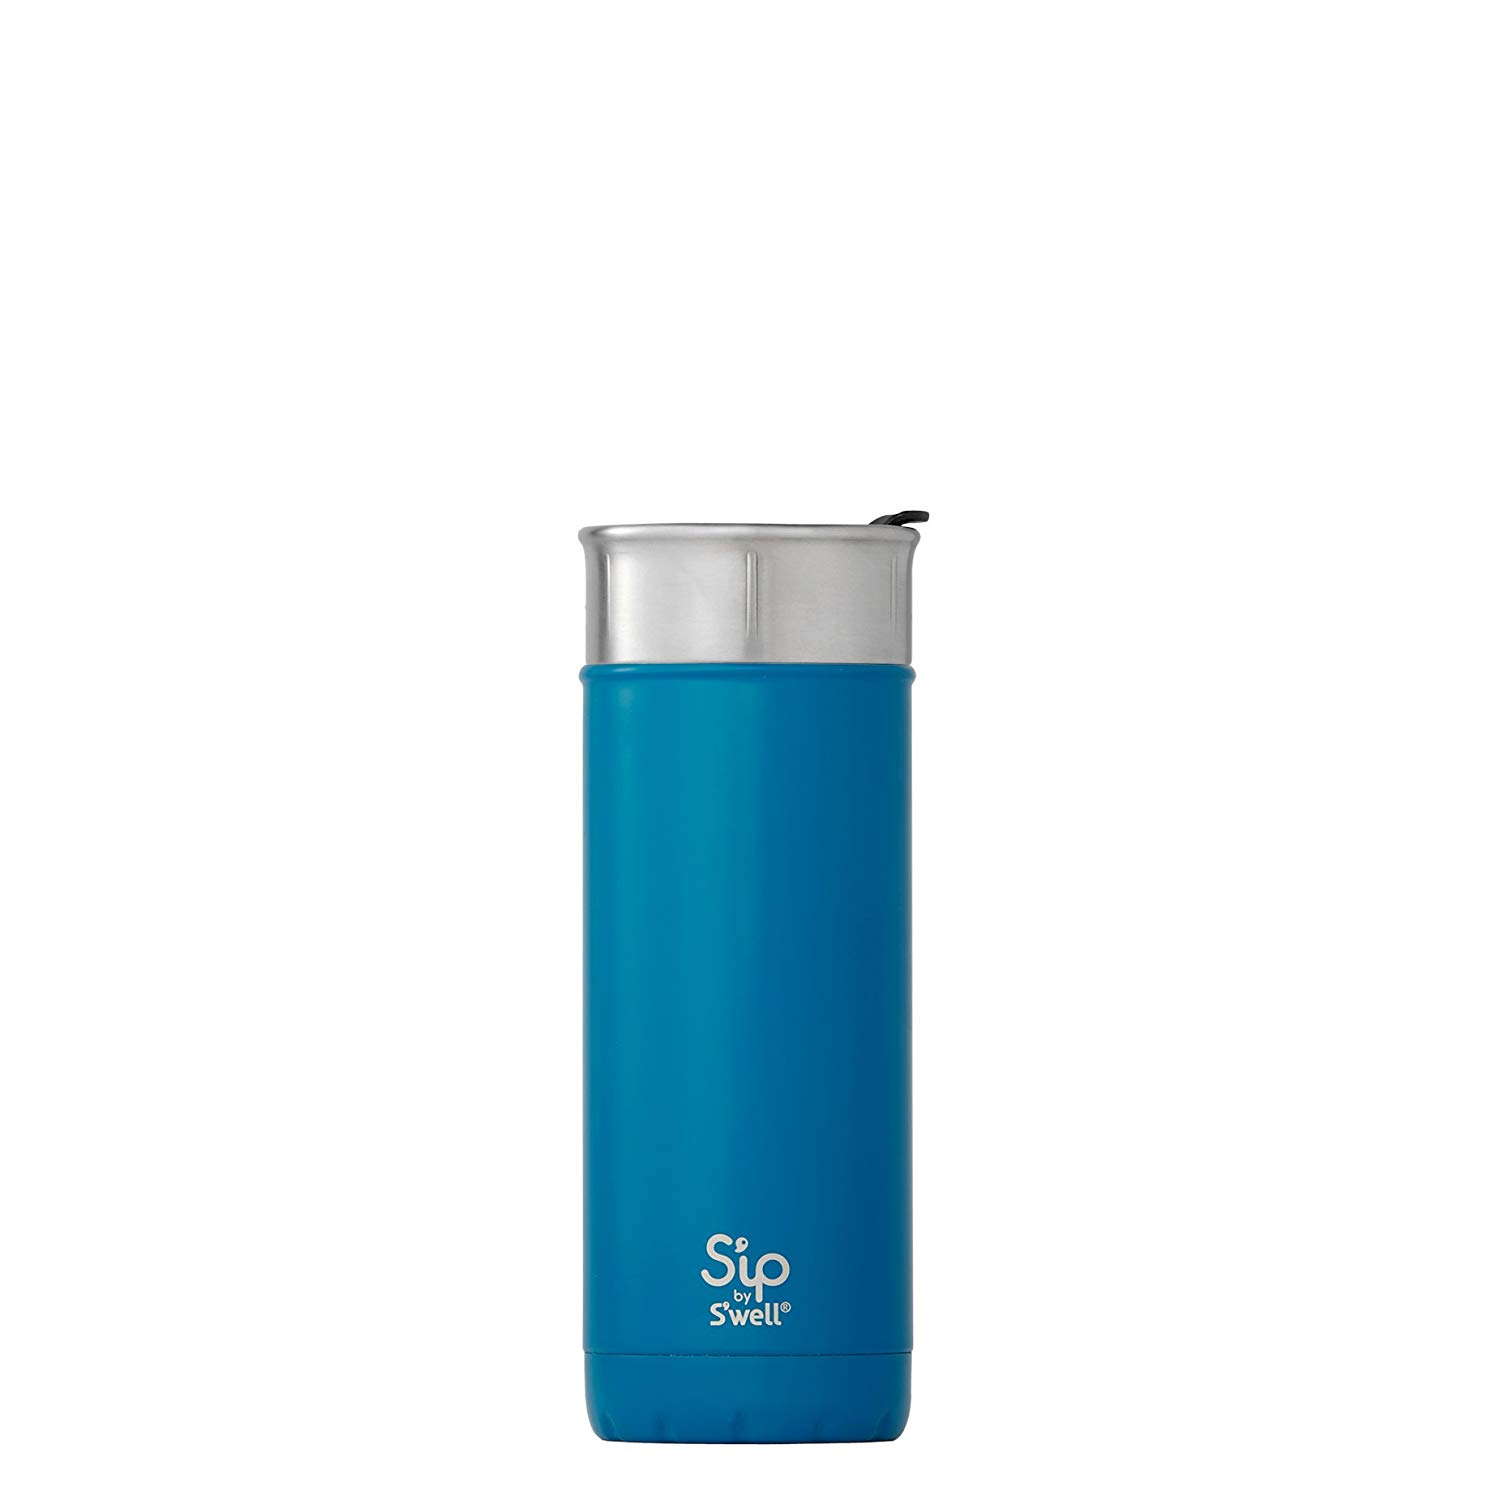 S'ip Travel Mug only $9.99! (was $24.99)